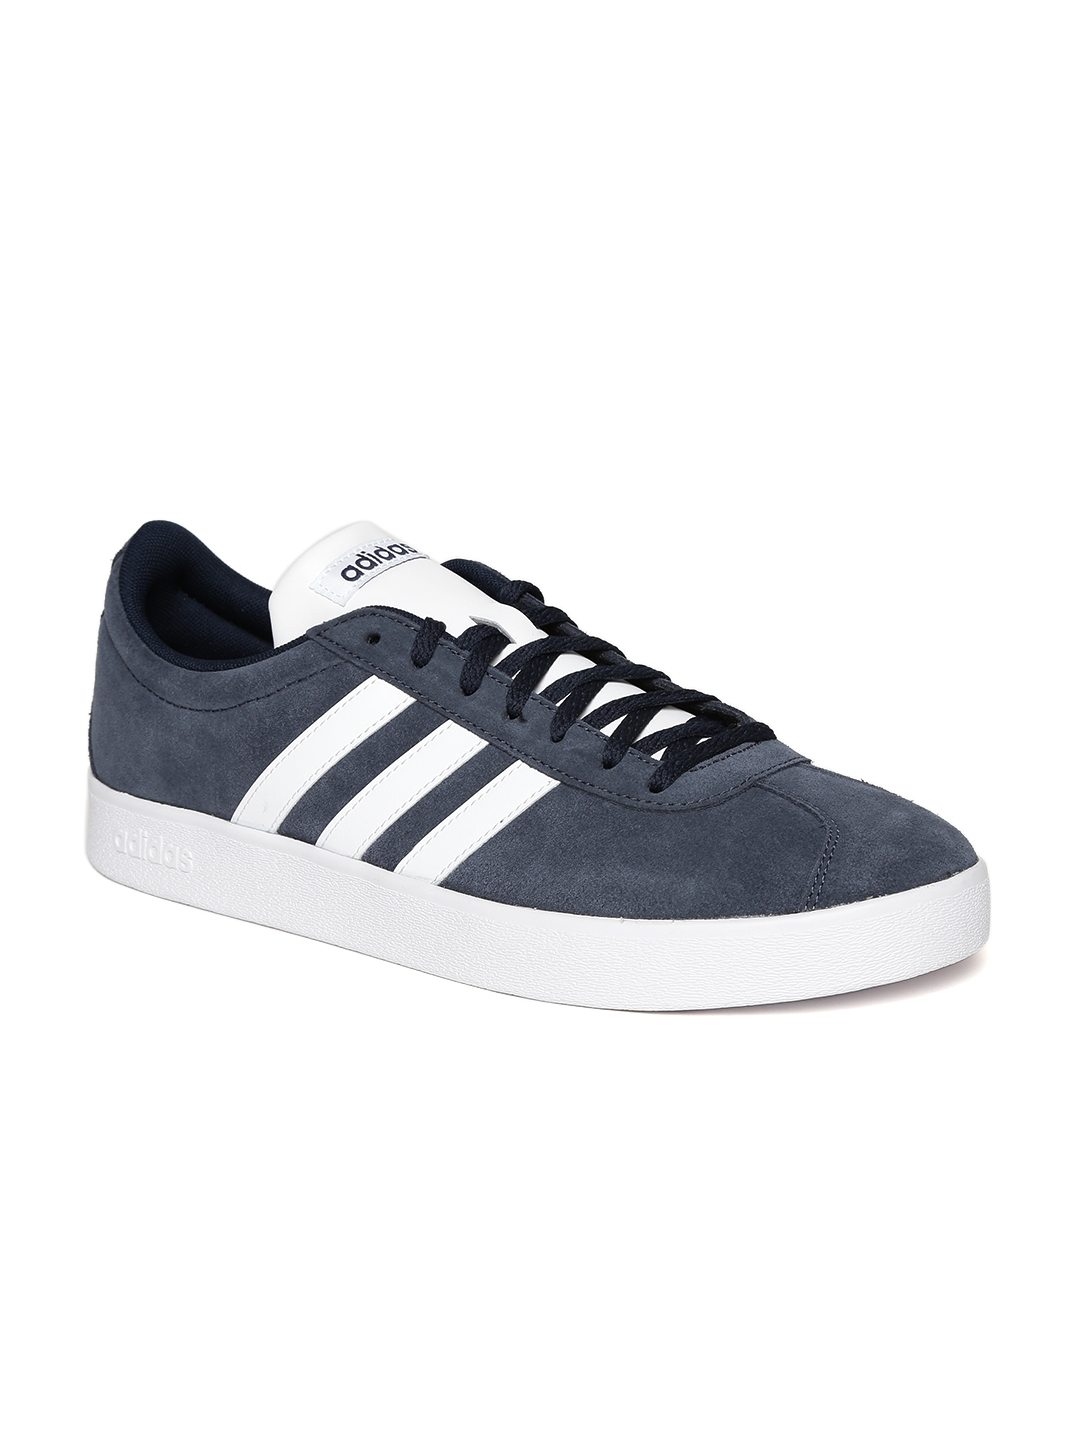 2e177389b8c Buy ADIDAS Men Navy Blue VL COURT 2.0 Sneakers - Casual Shoes for ...